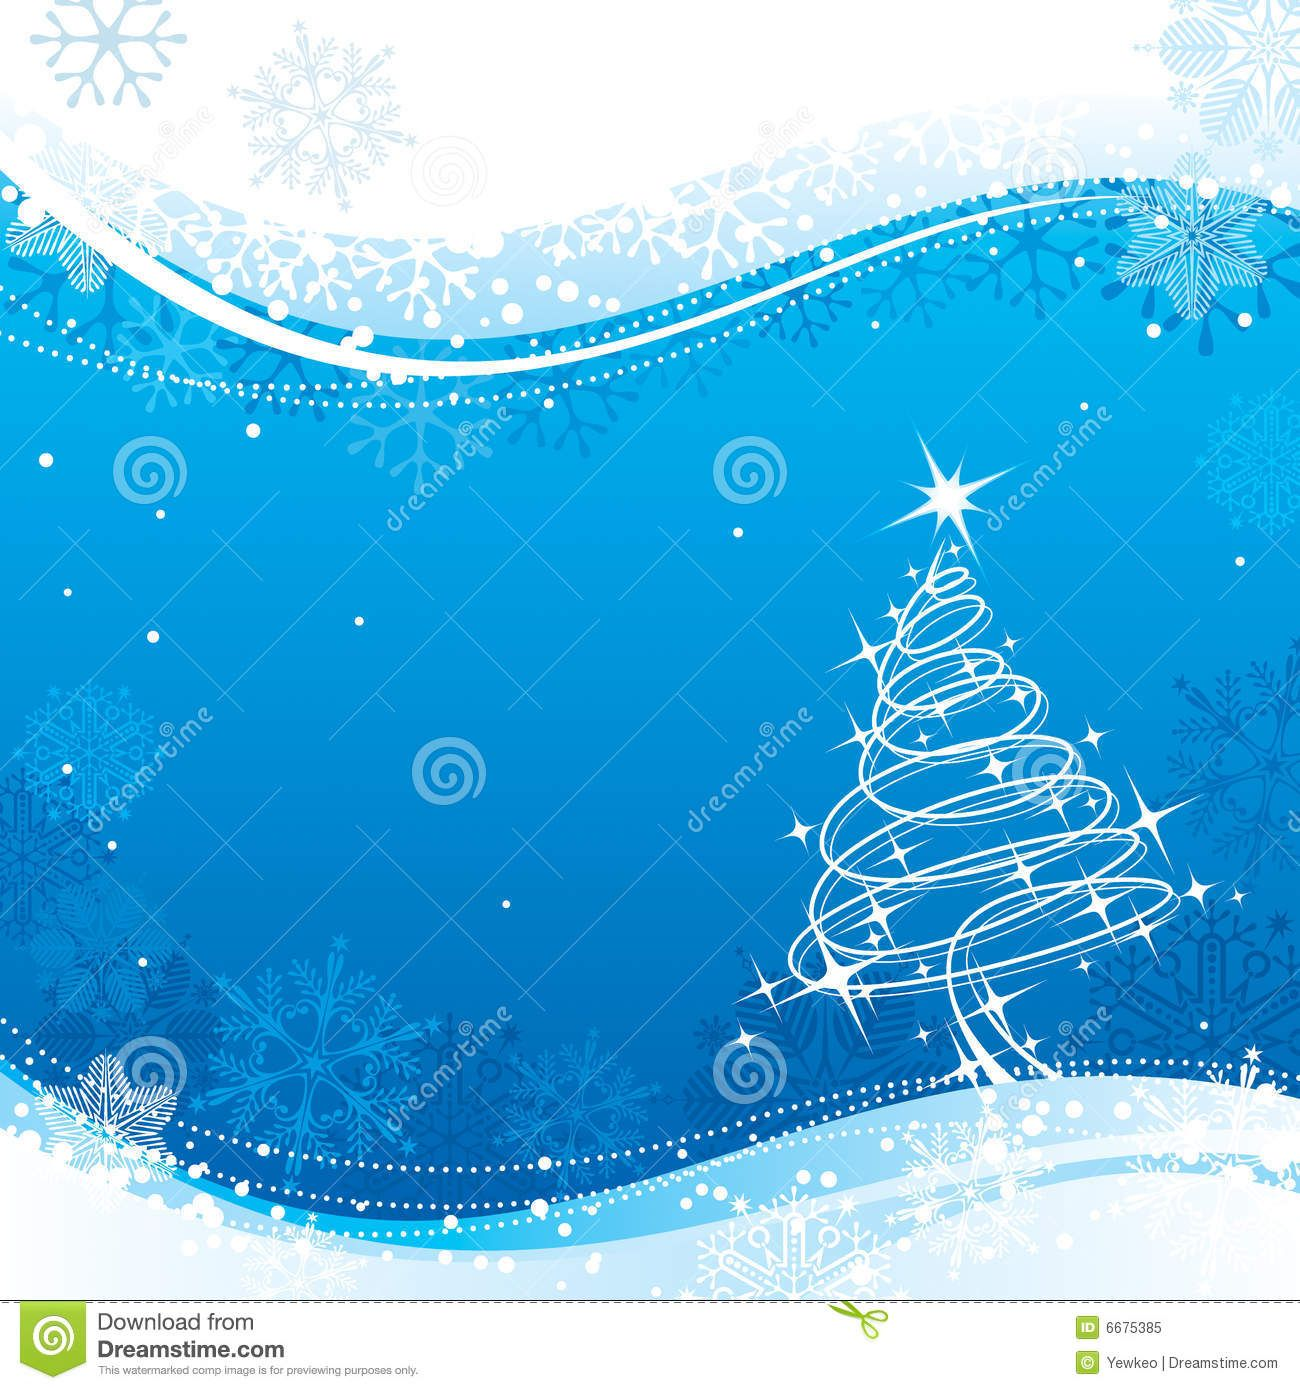 Blue Christmas Cartoon Vector Cartoondealer Com 6675385 Blue Christmas Christmas Background Vector Christmas Cartoons Use them in commercial designs under lifetime, perpetual & worldwide rights. blue christmas cartoon vector